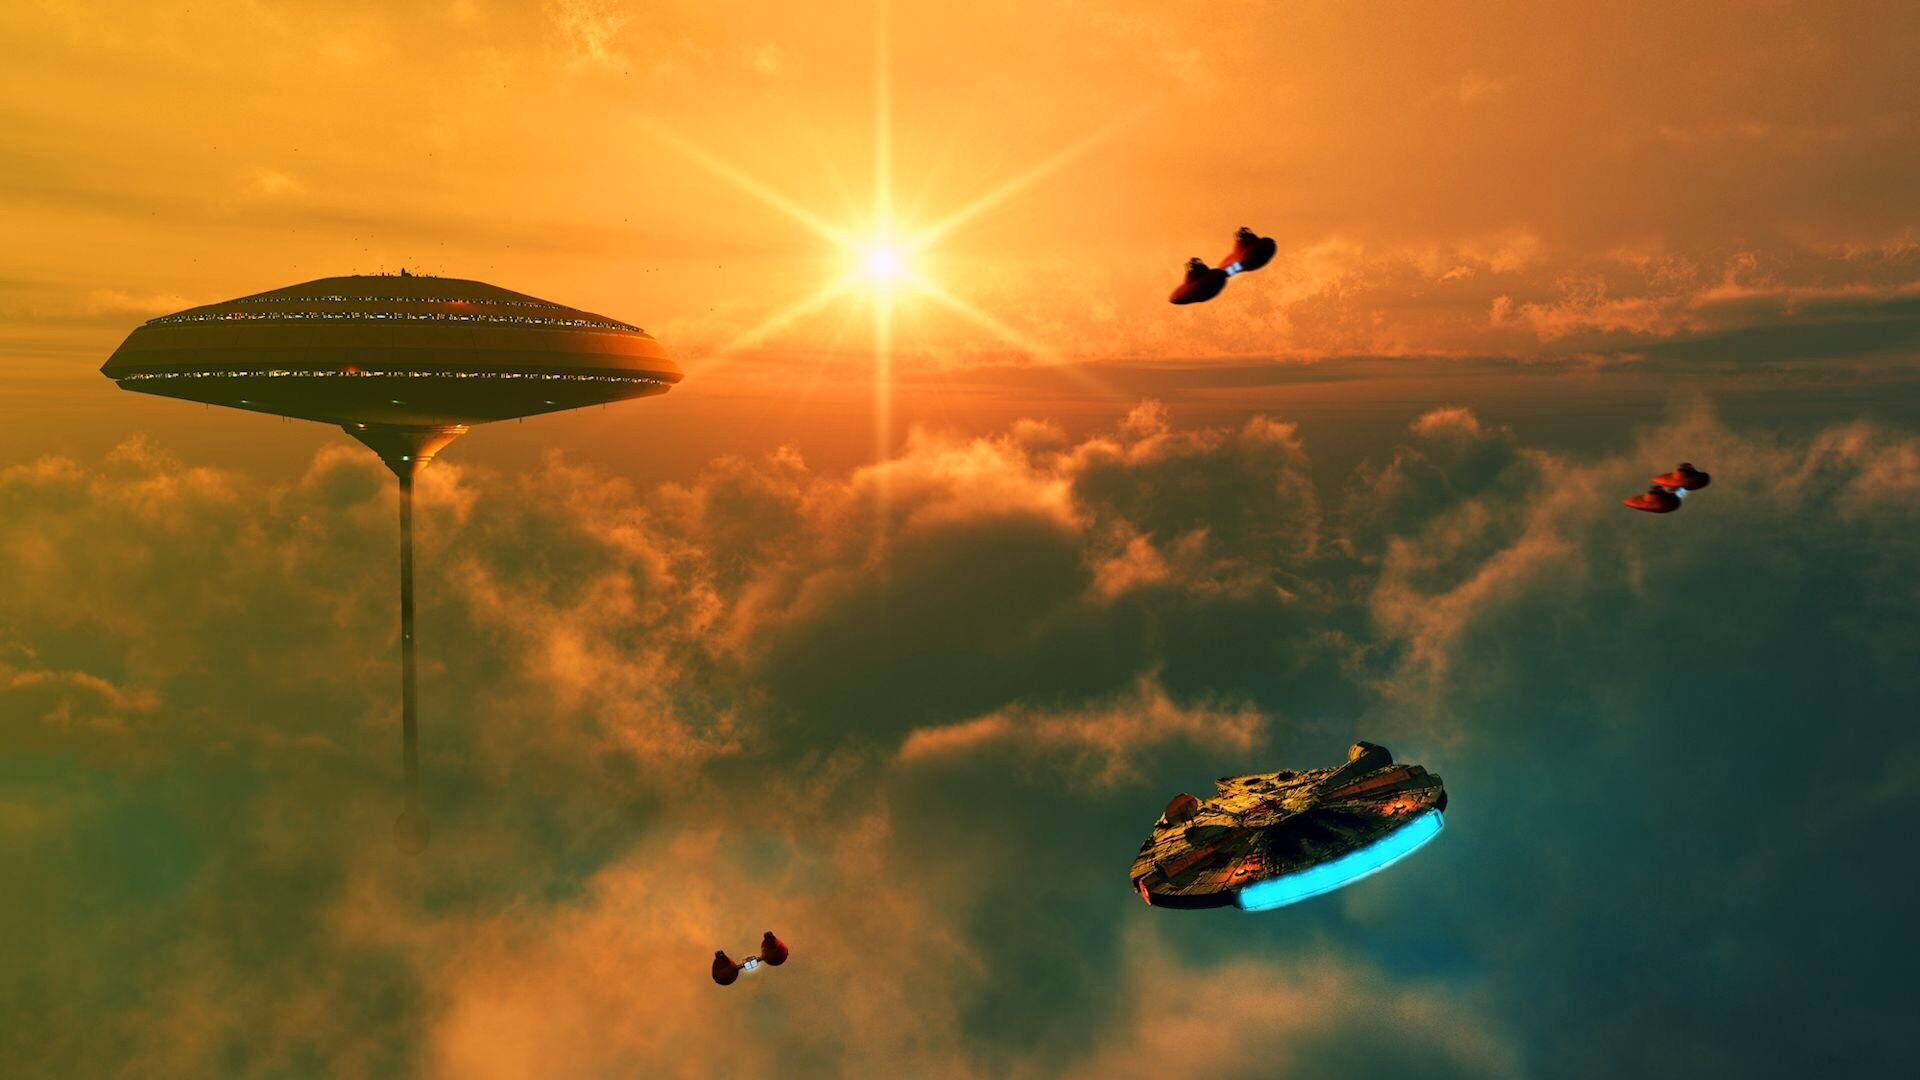 1920x1080-Star-Wars-Cloud-City-Need-iPhone-S-Plus-Background-for-IPhoneSPlus-F-wallpaper-wp3601641